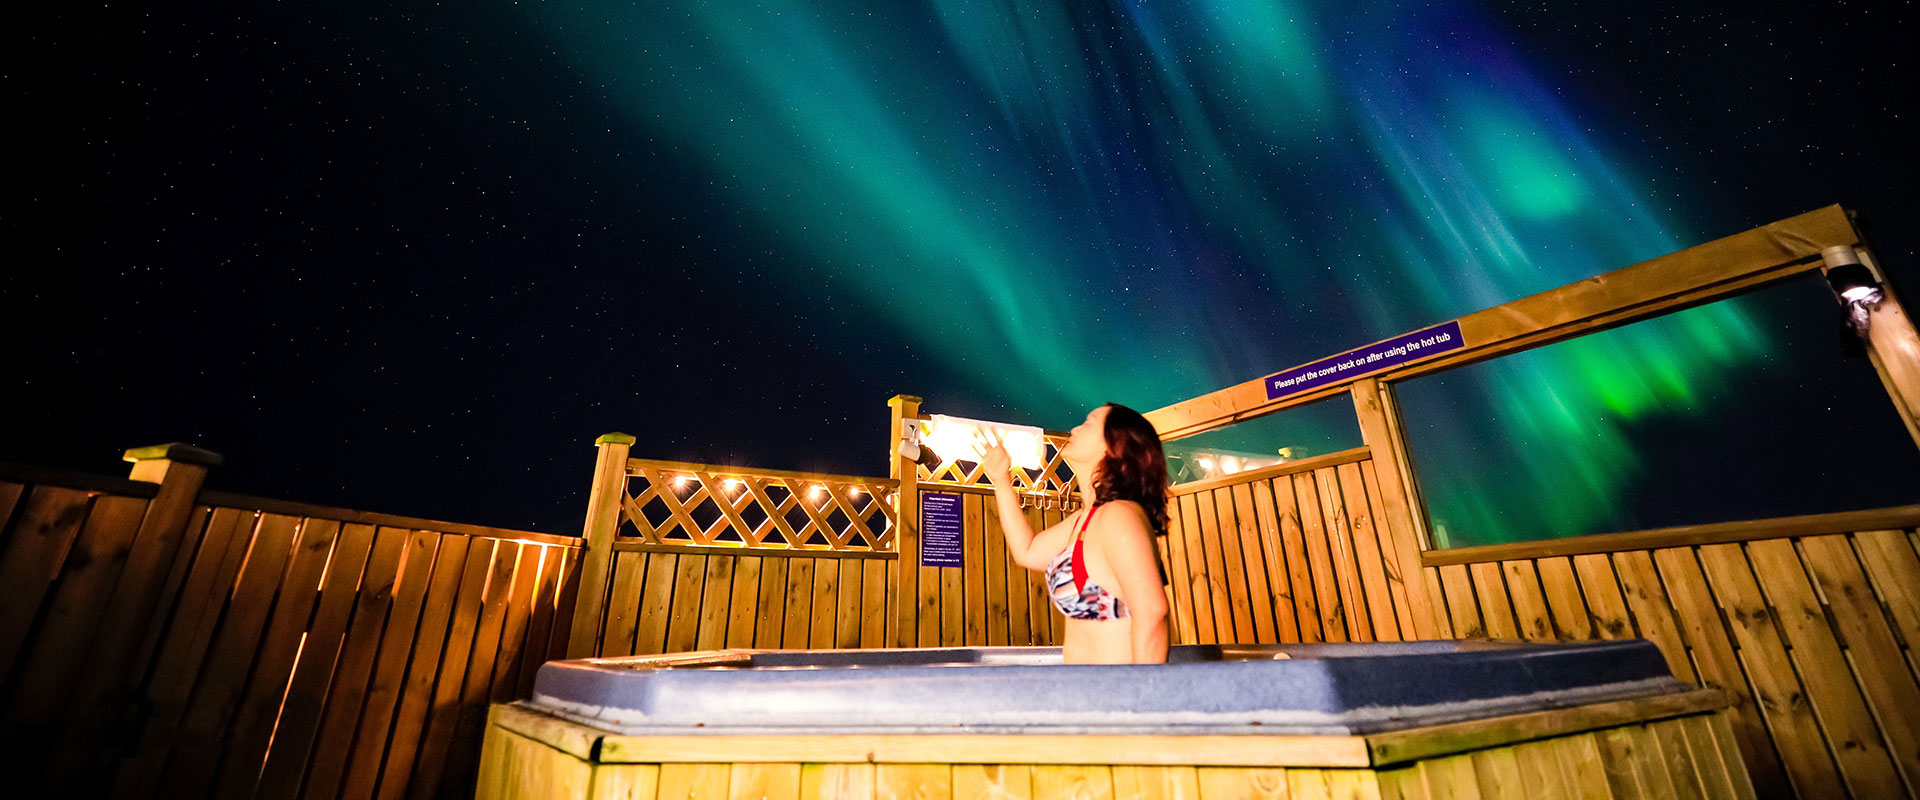 Northern light view in the geothermal hot tub